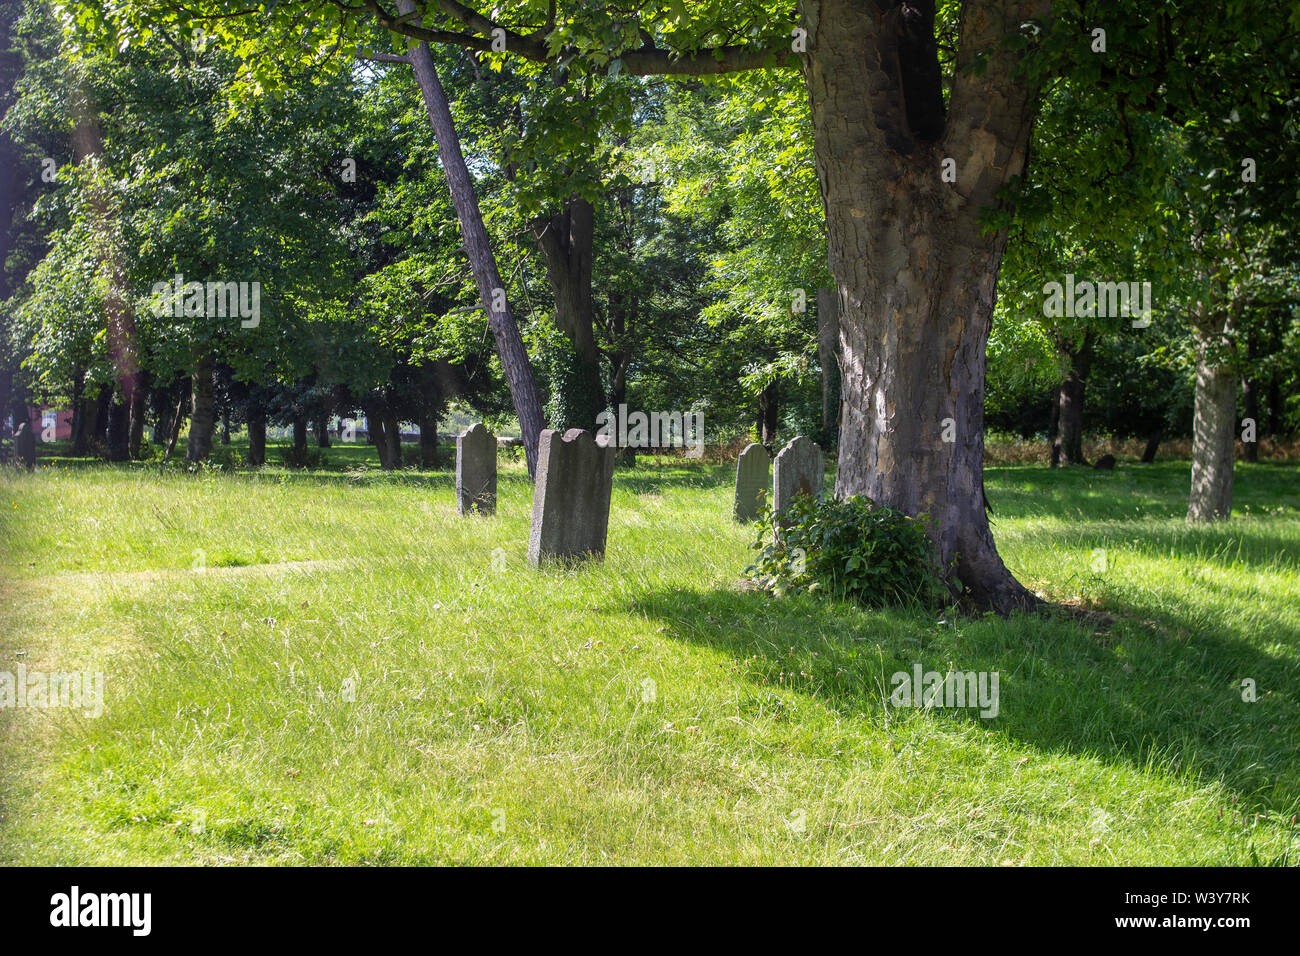 Bullys Acre Graveyard in the grounds of the Royal Hospital, Kilmainham, Dublin,Closed in 1832 due to serious overcrowding caused by cholera outbreak. - Stock Image